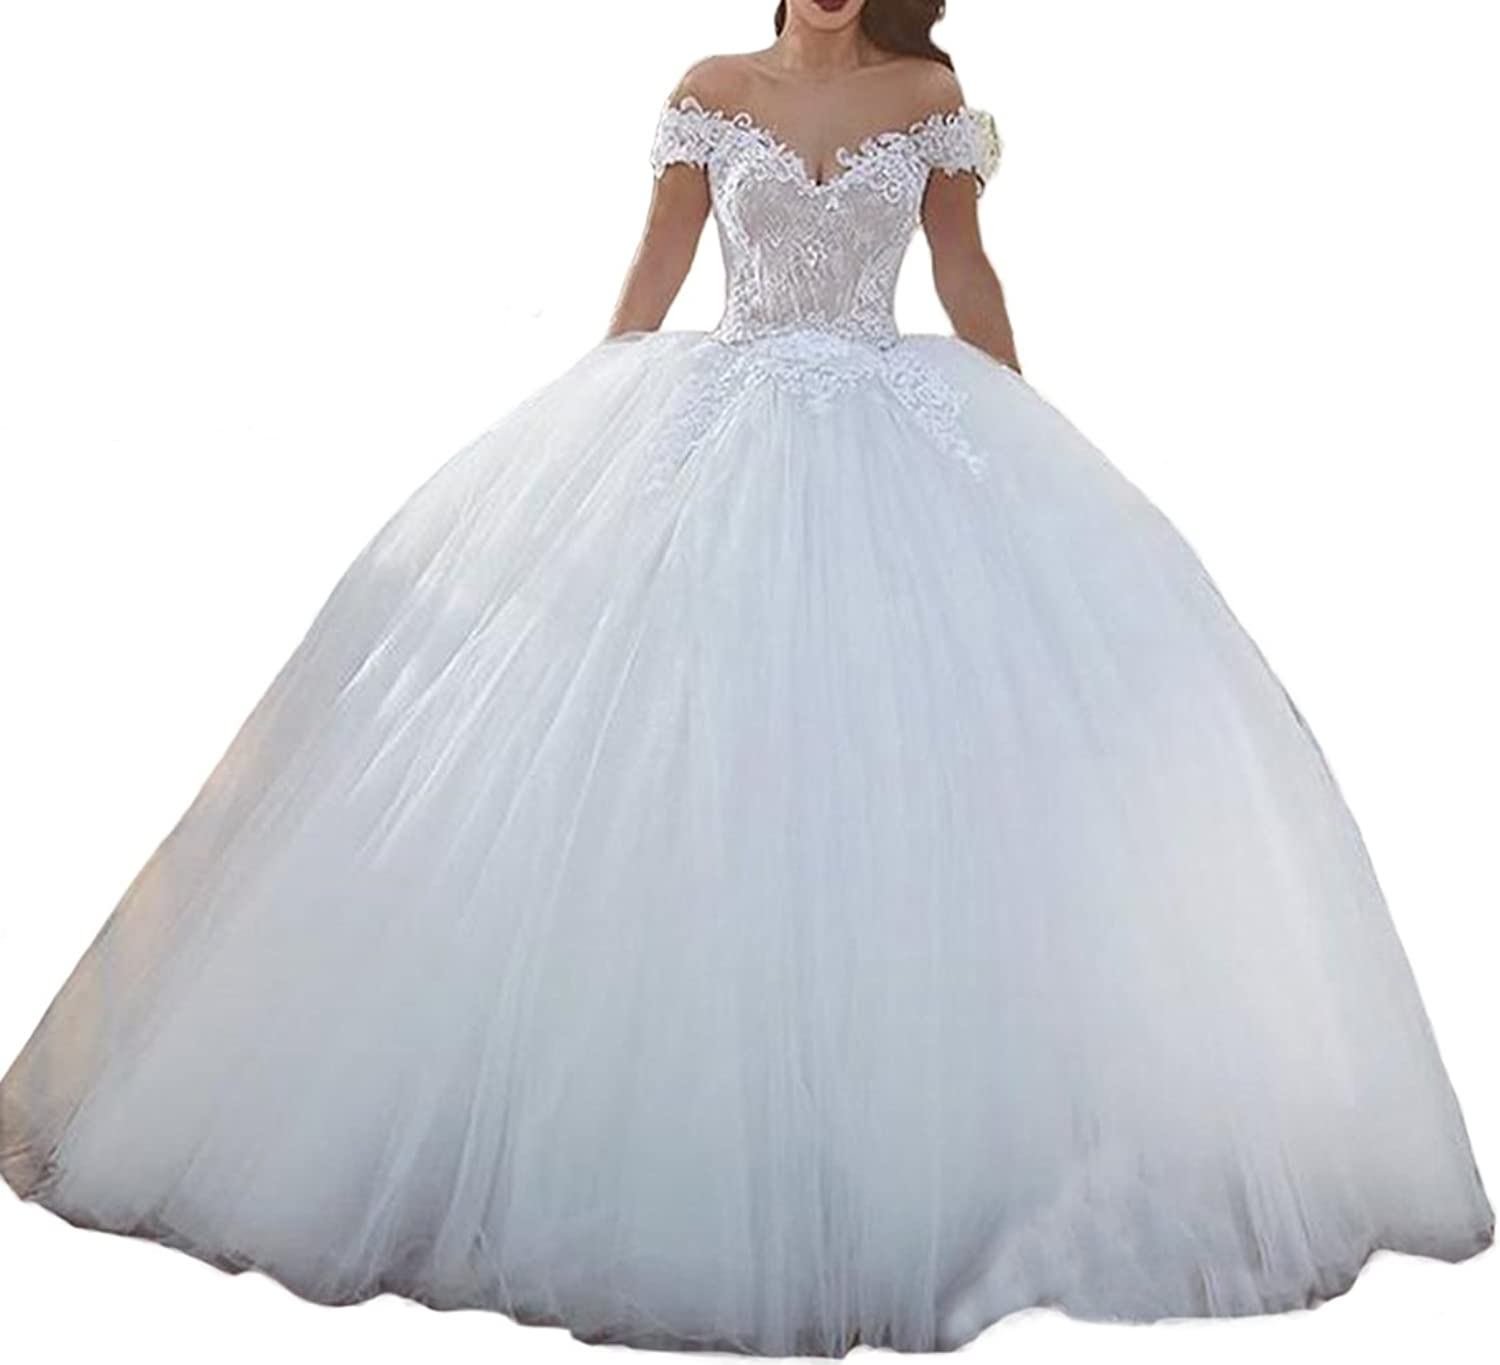 Tsbridal Off The Shoulder Lace Appliques Ball Gown Wedding Dresses Bride Gowns